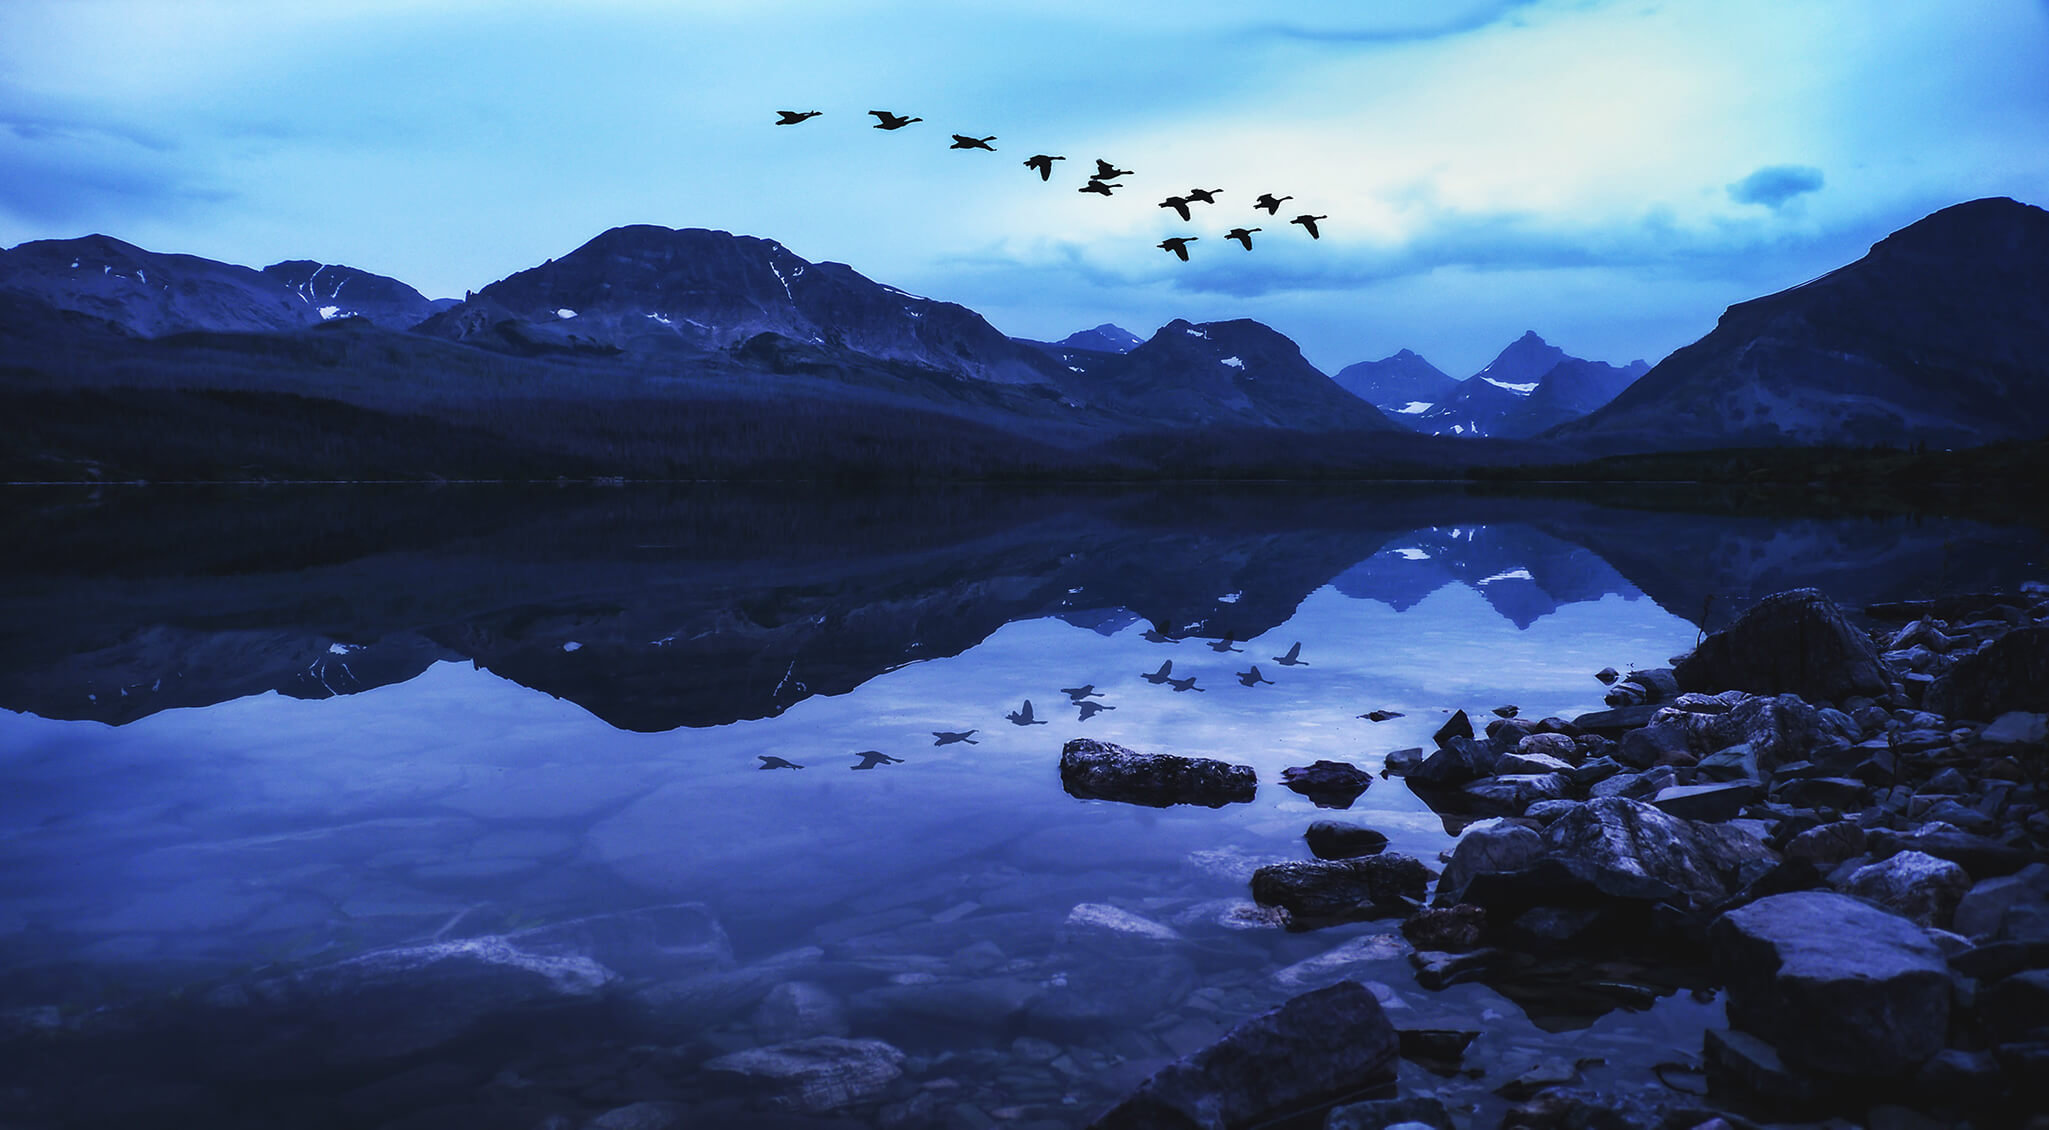 birds flying over the lake